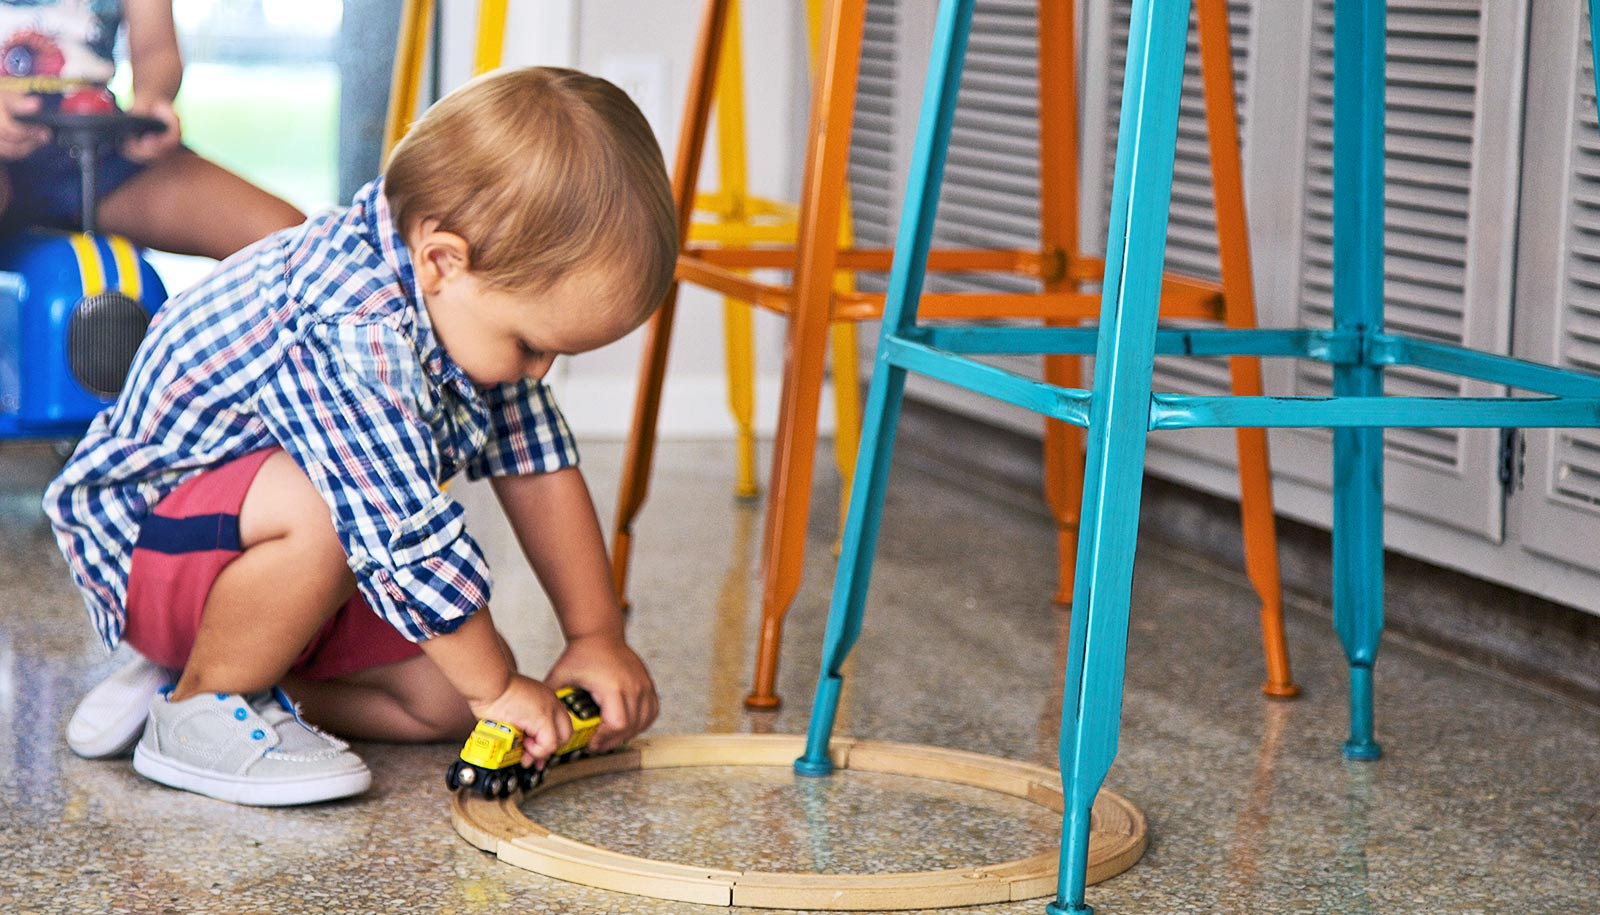 Can couches and vinyl floors make kids really sick?